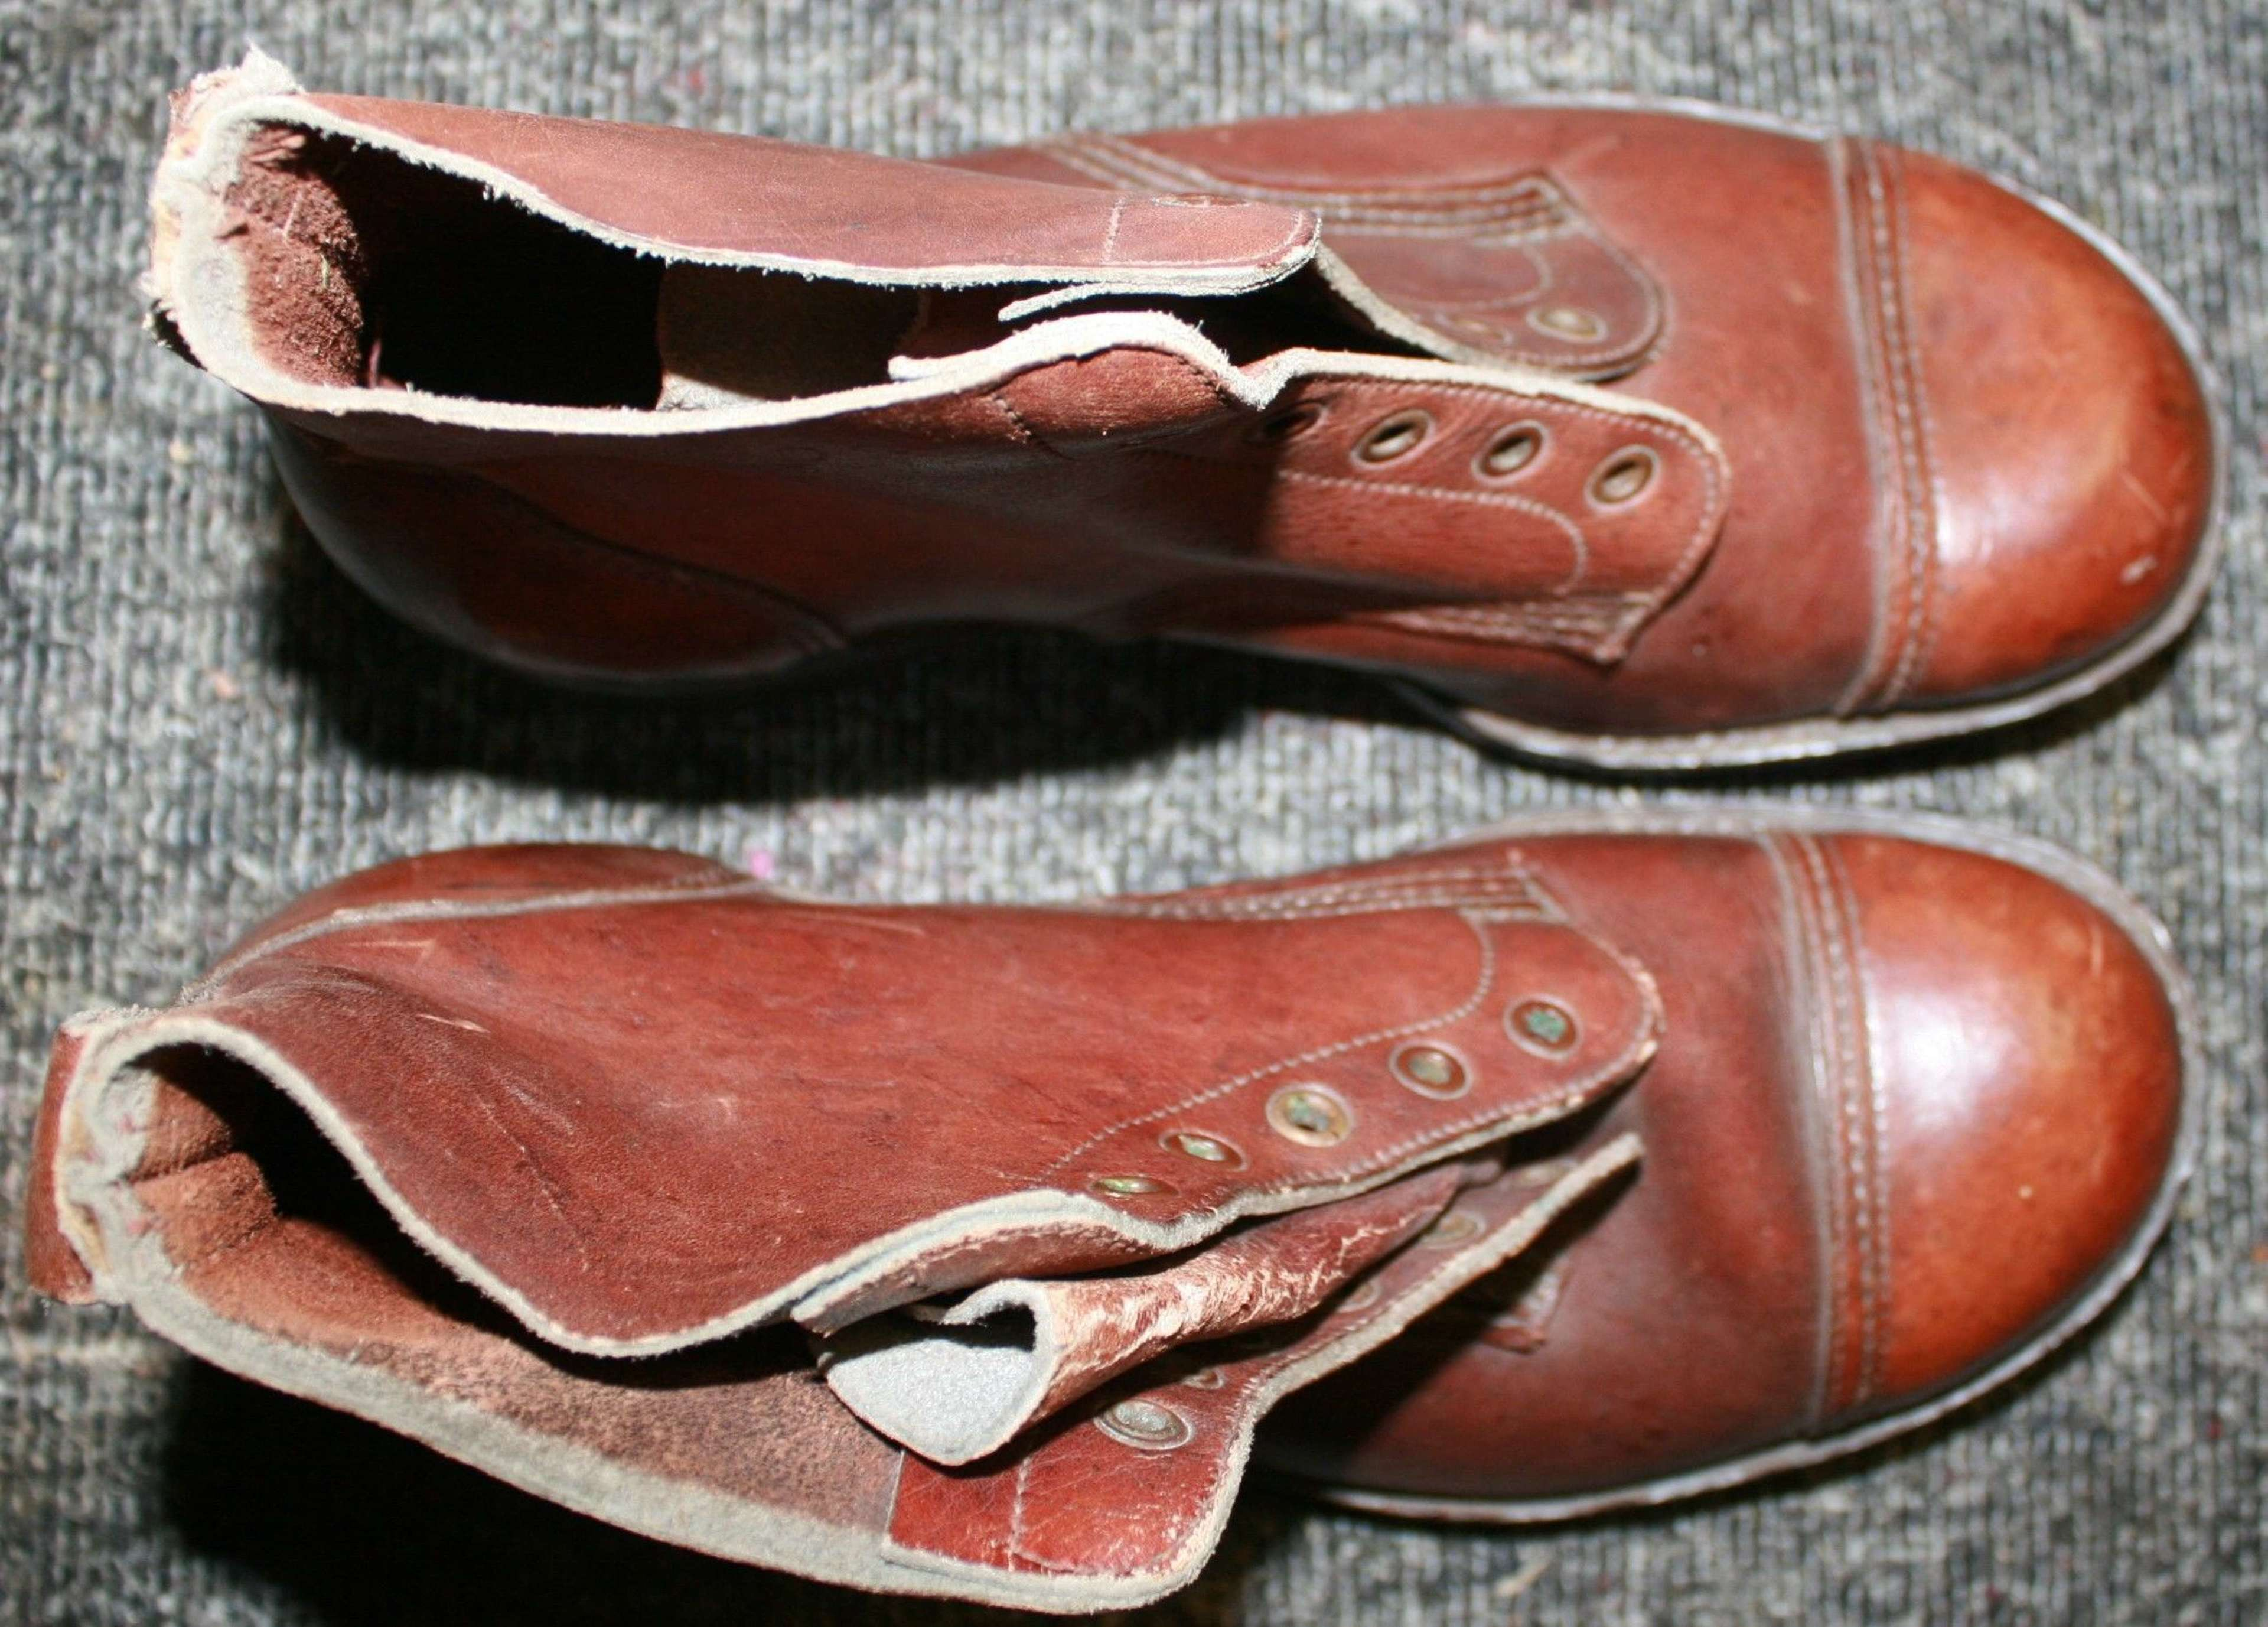 A PAIR OF 1945 DATED JUNGLE BOOTS SIZE 8 M